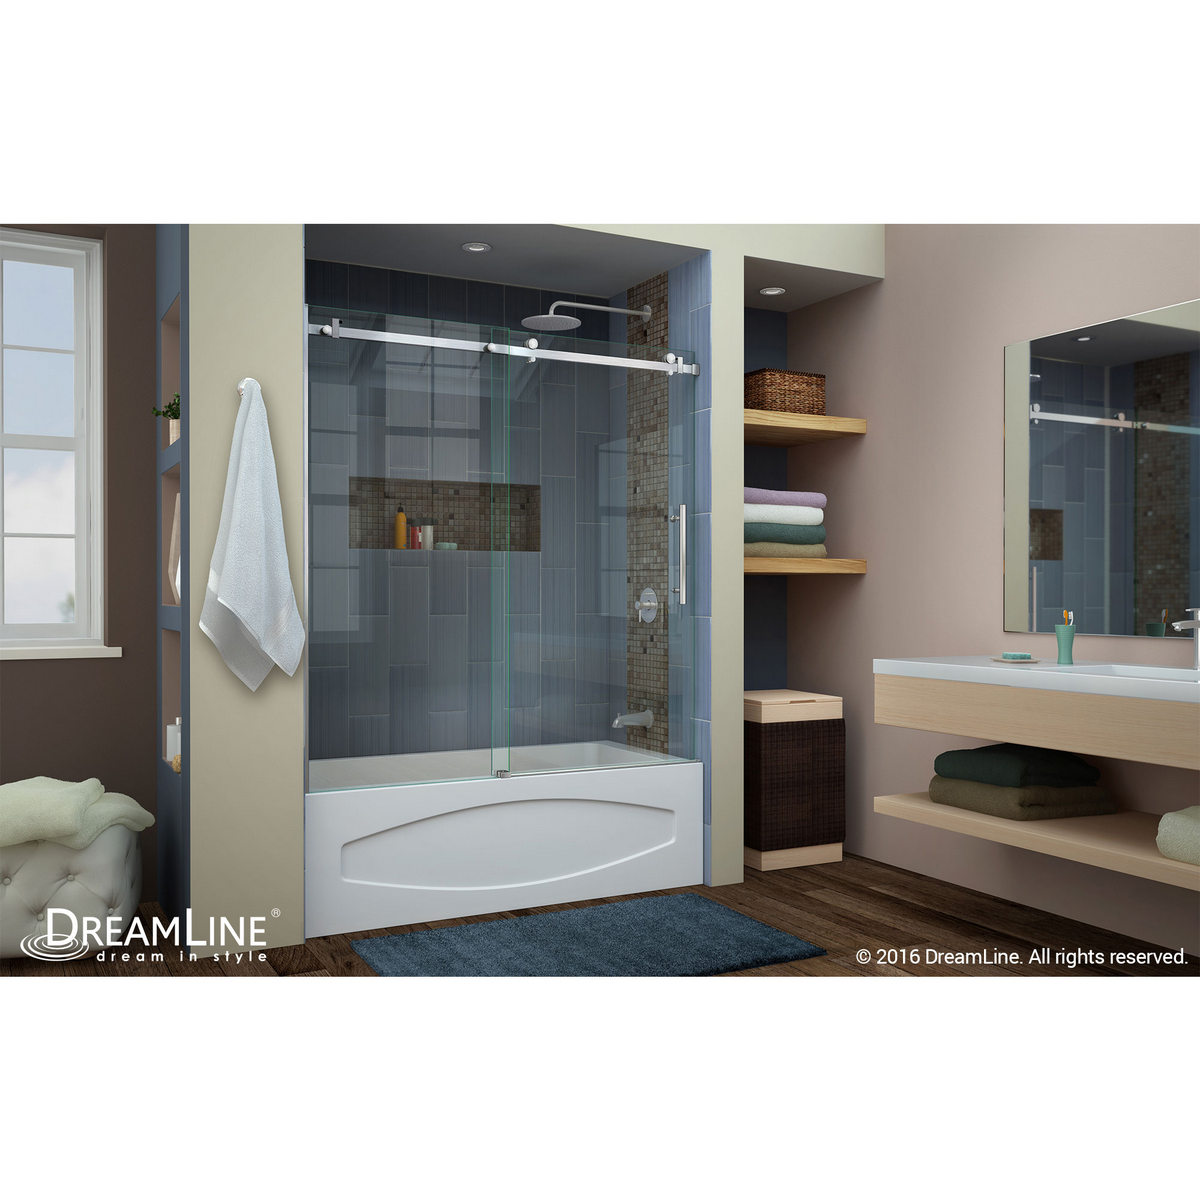 DreamLine Enigma Air 56 to 60 In. Frameless Sliding Tub Door Brushed ...